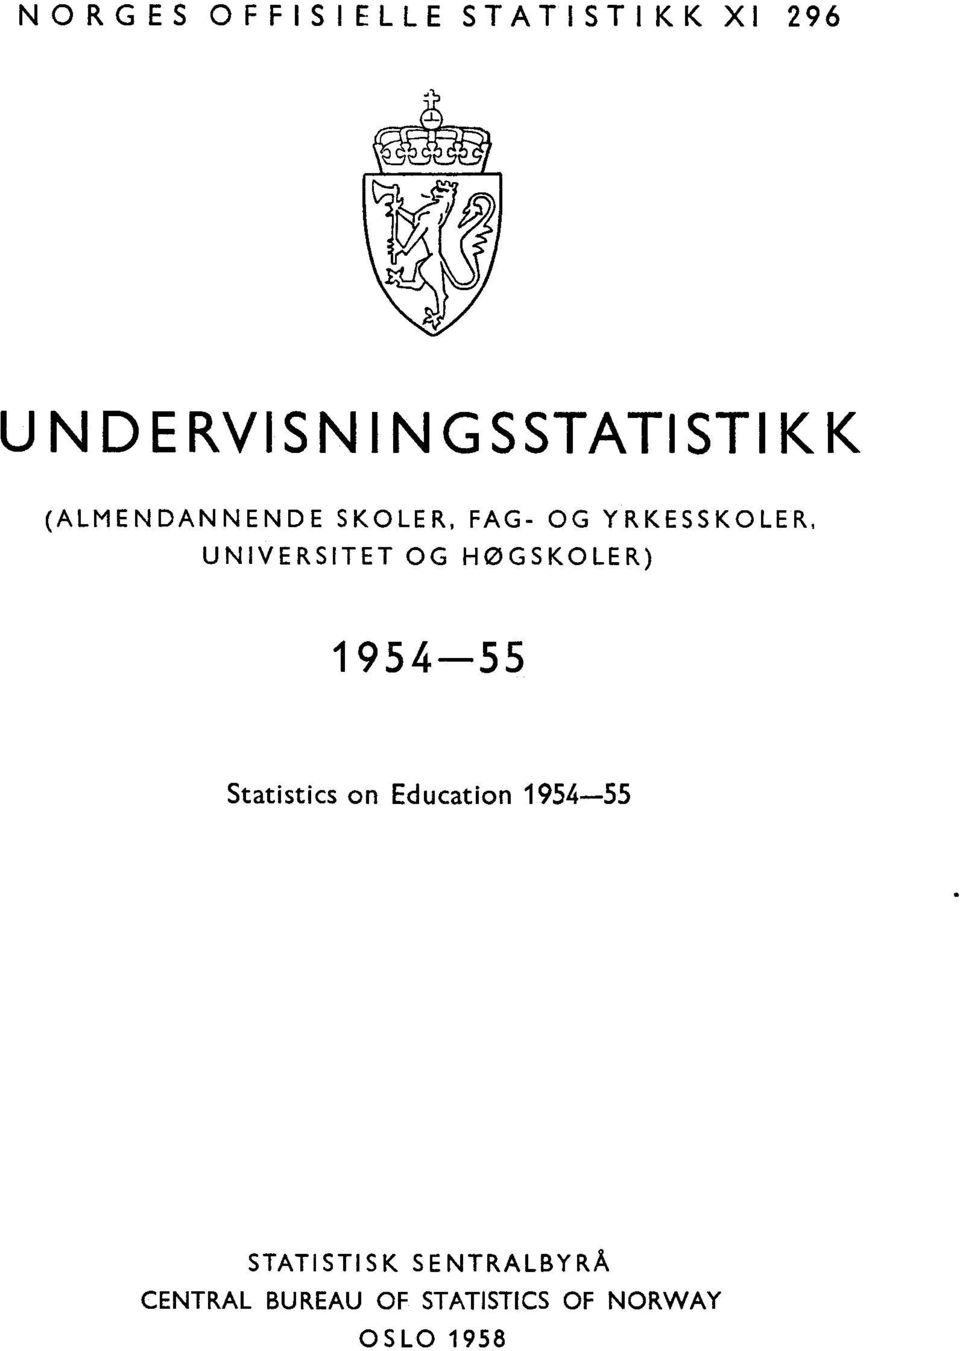 YRKESSKOLER, UNIVERSITET OG HØGSKOLER) - Statistics on